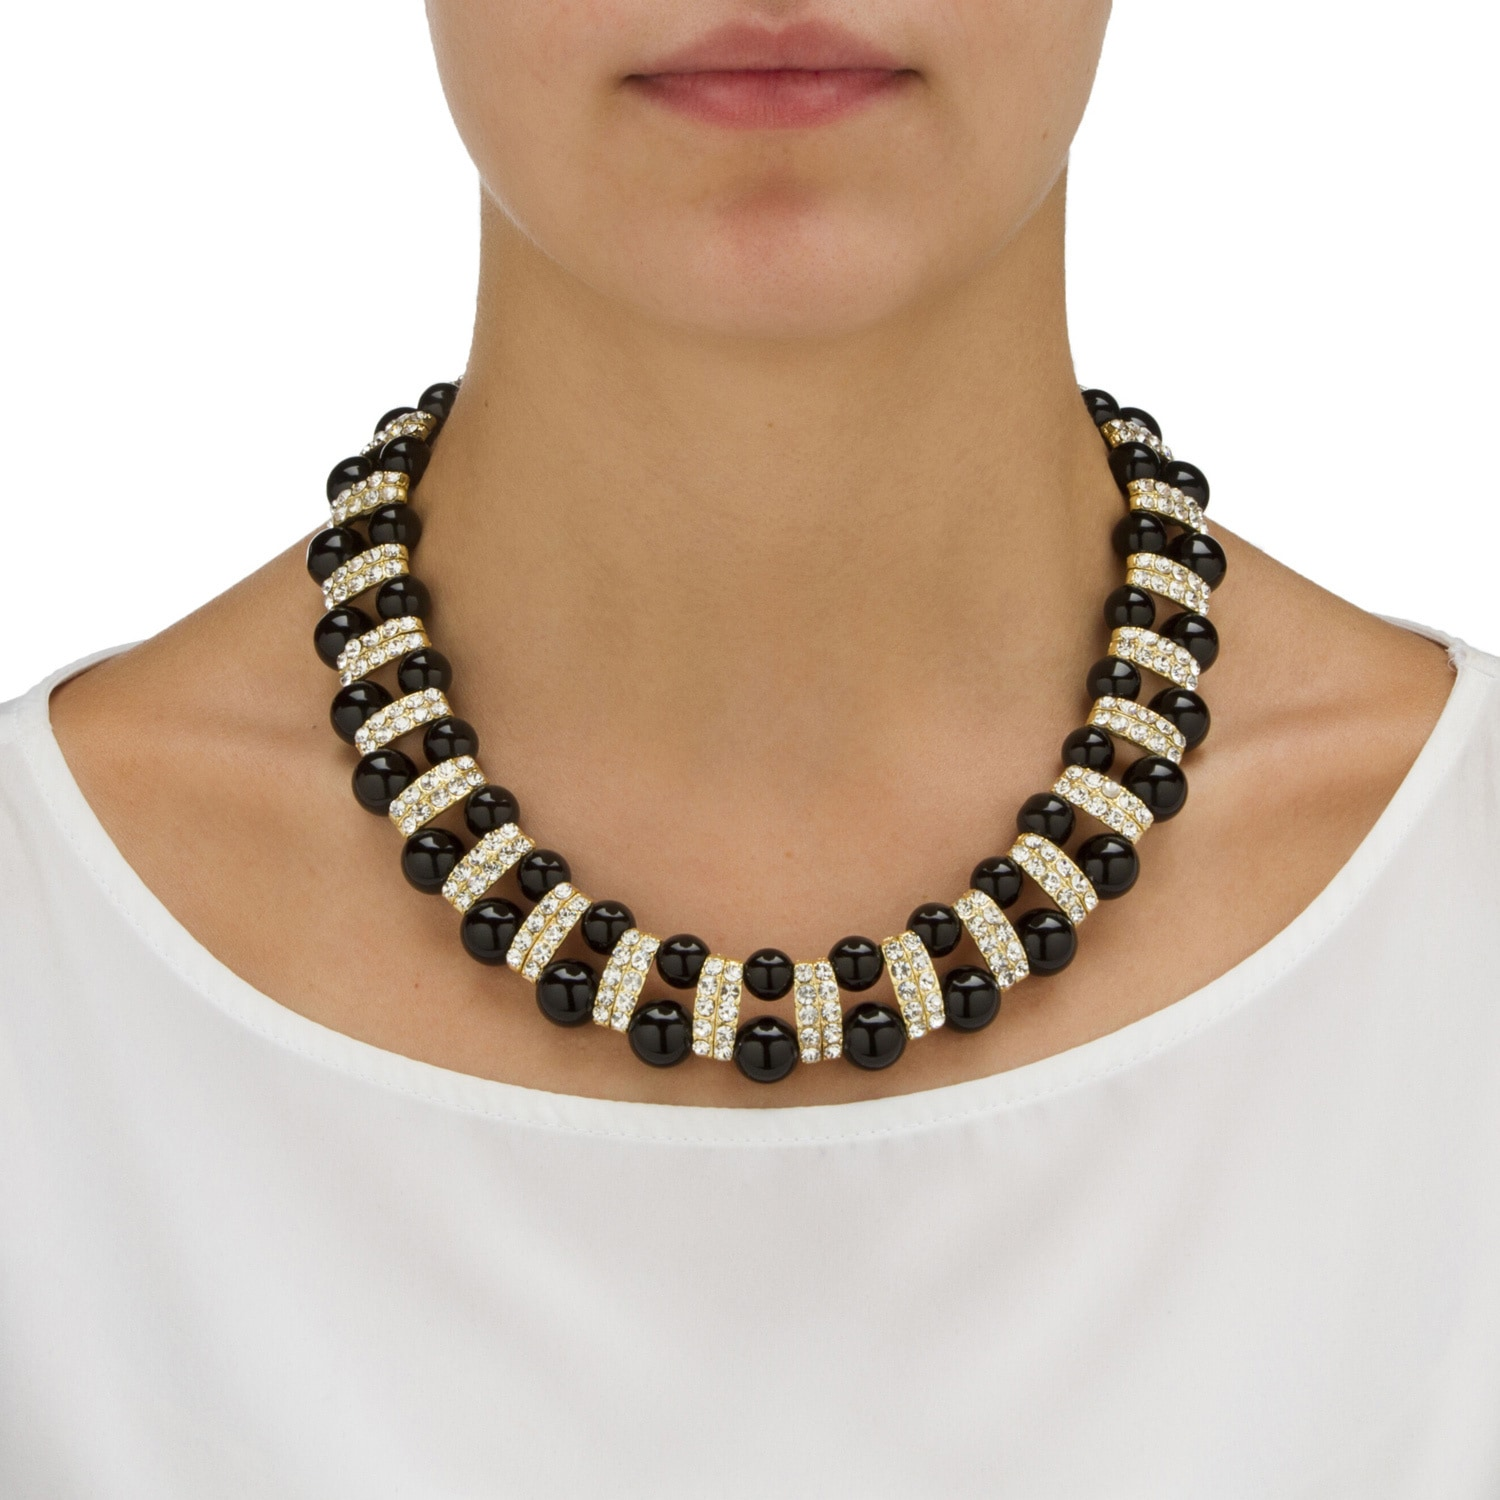 chain rope big very heavy neck necklace